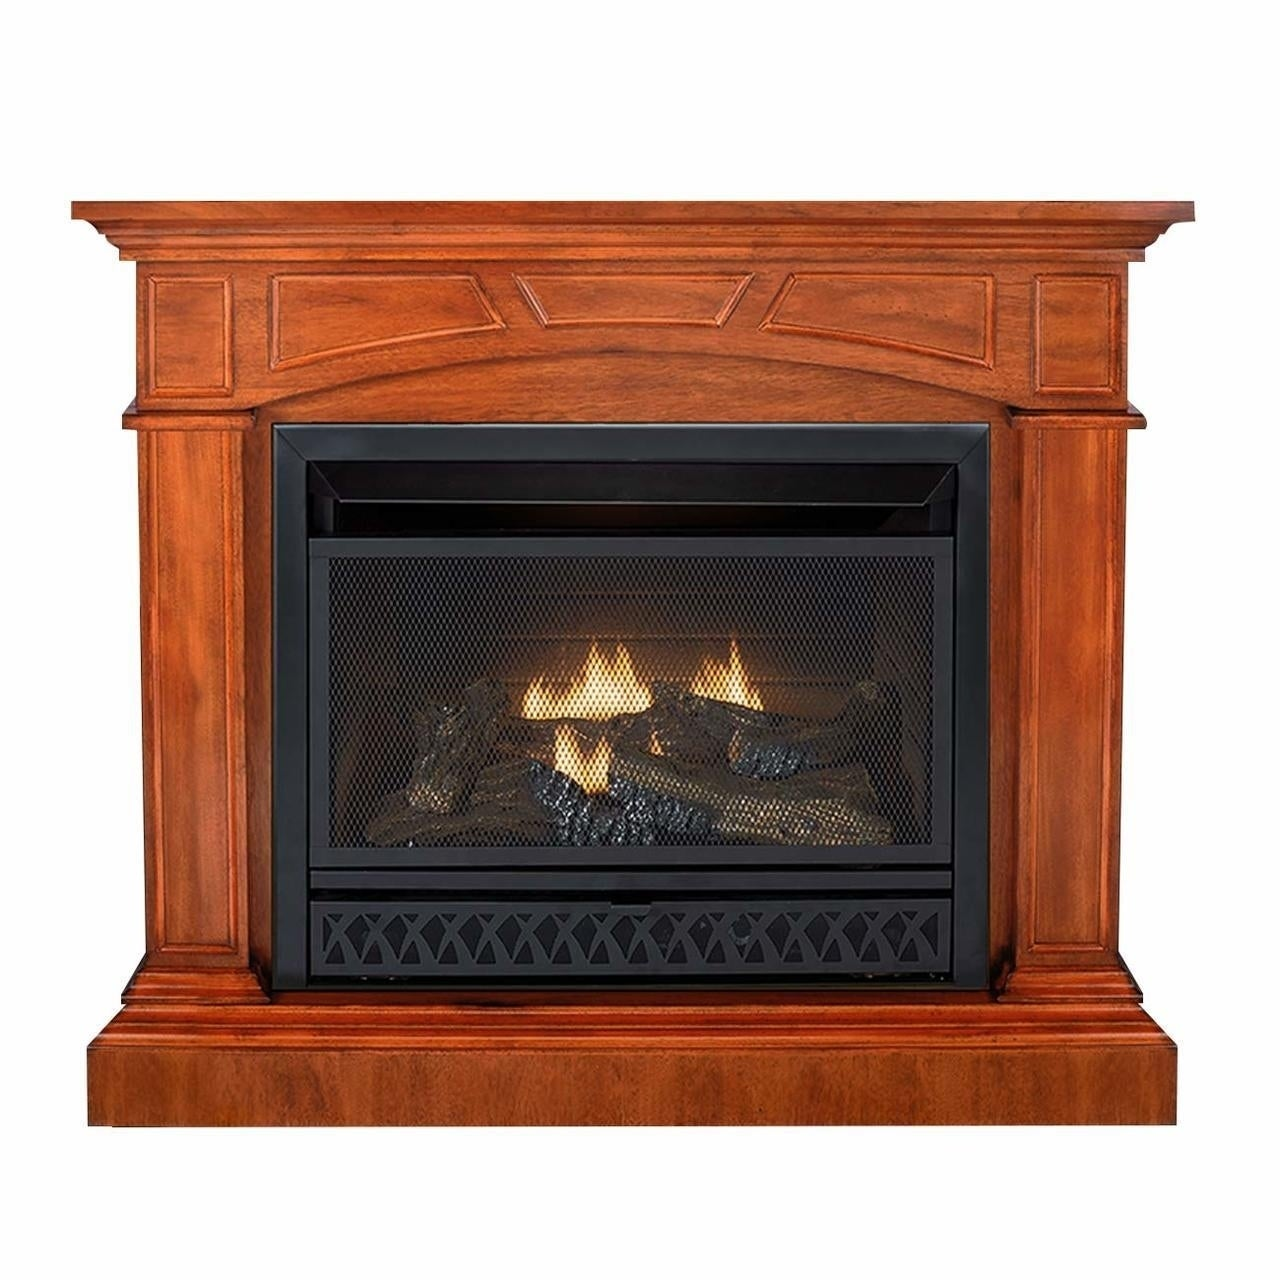 Shop Duluth Forge Dual Fuel Ventless Gas Fireplace 26 000 Btu T